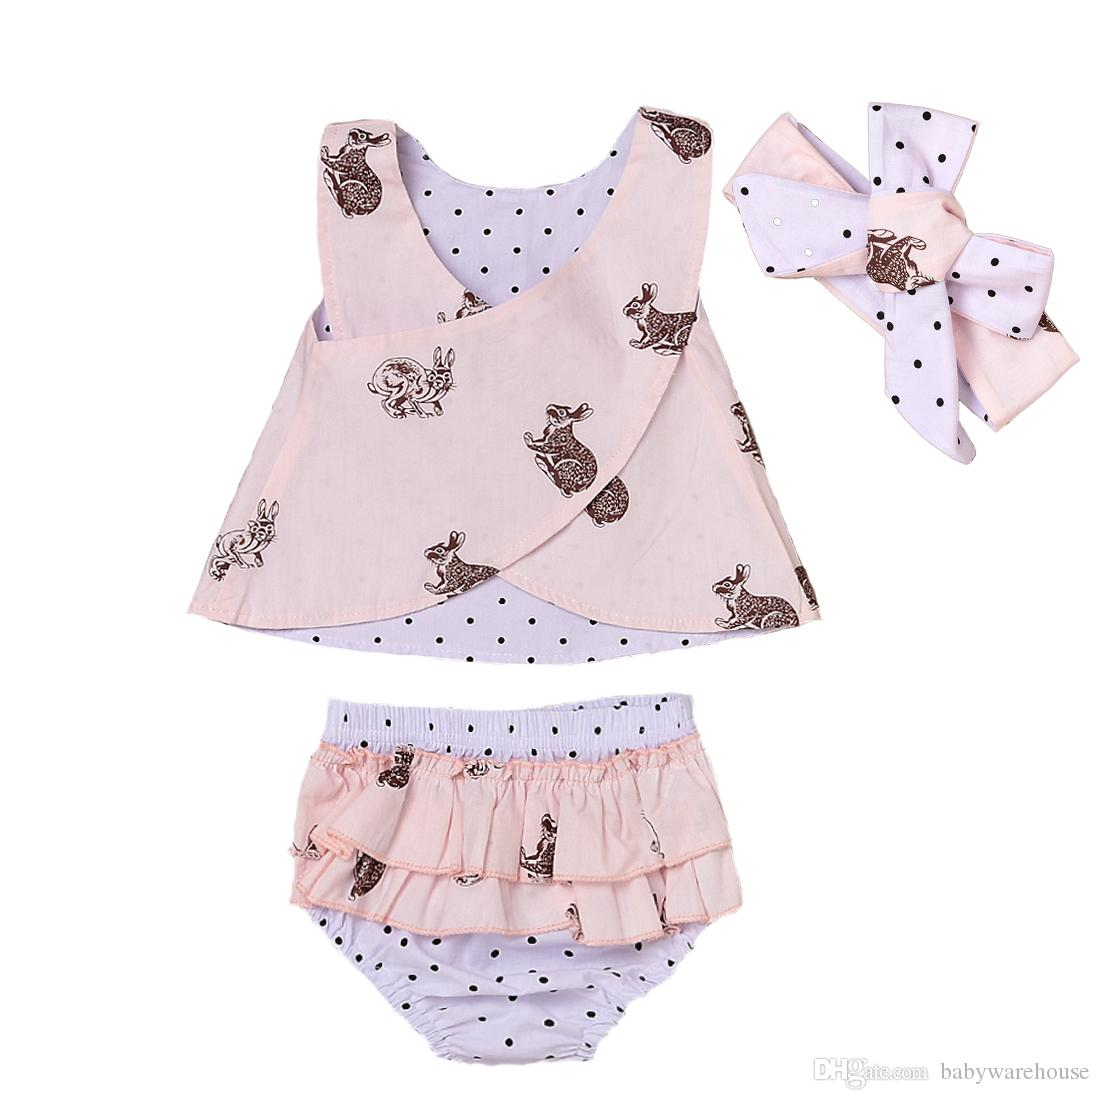 Newborn Baby Girls Clothes Summer Sleeveless Backless Cross Tops + Polka Dot Shorts + Headband 3PCS Set Girls Outfits Kids Clothing Boutique